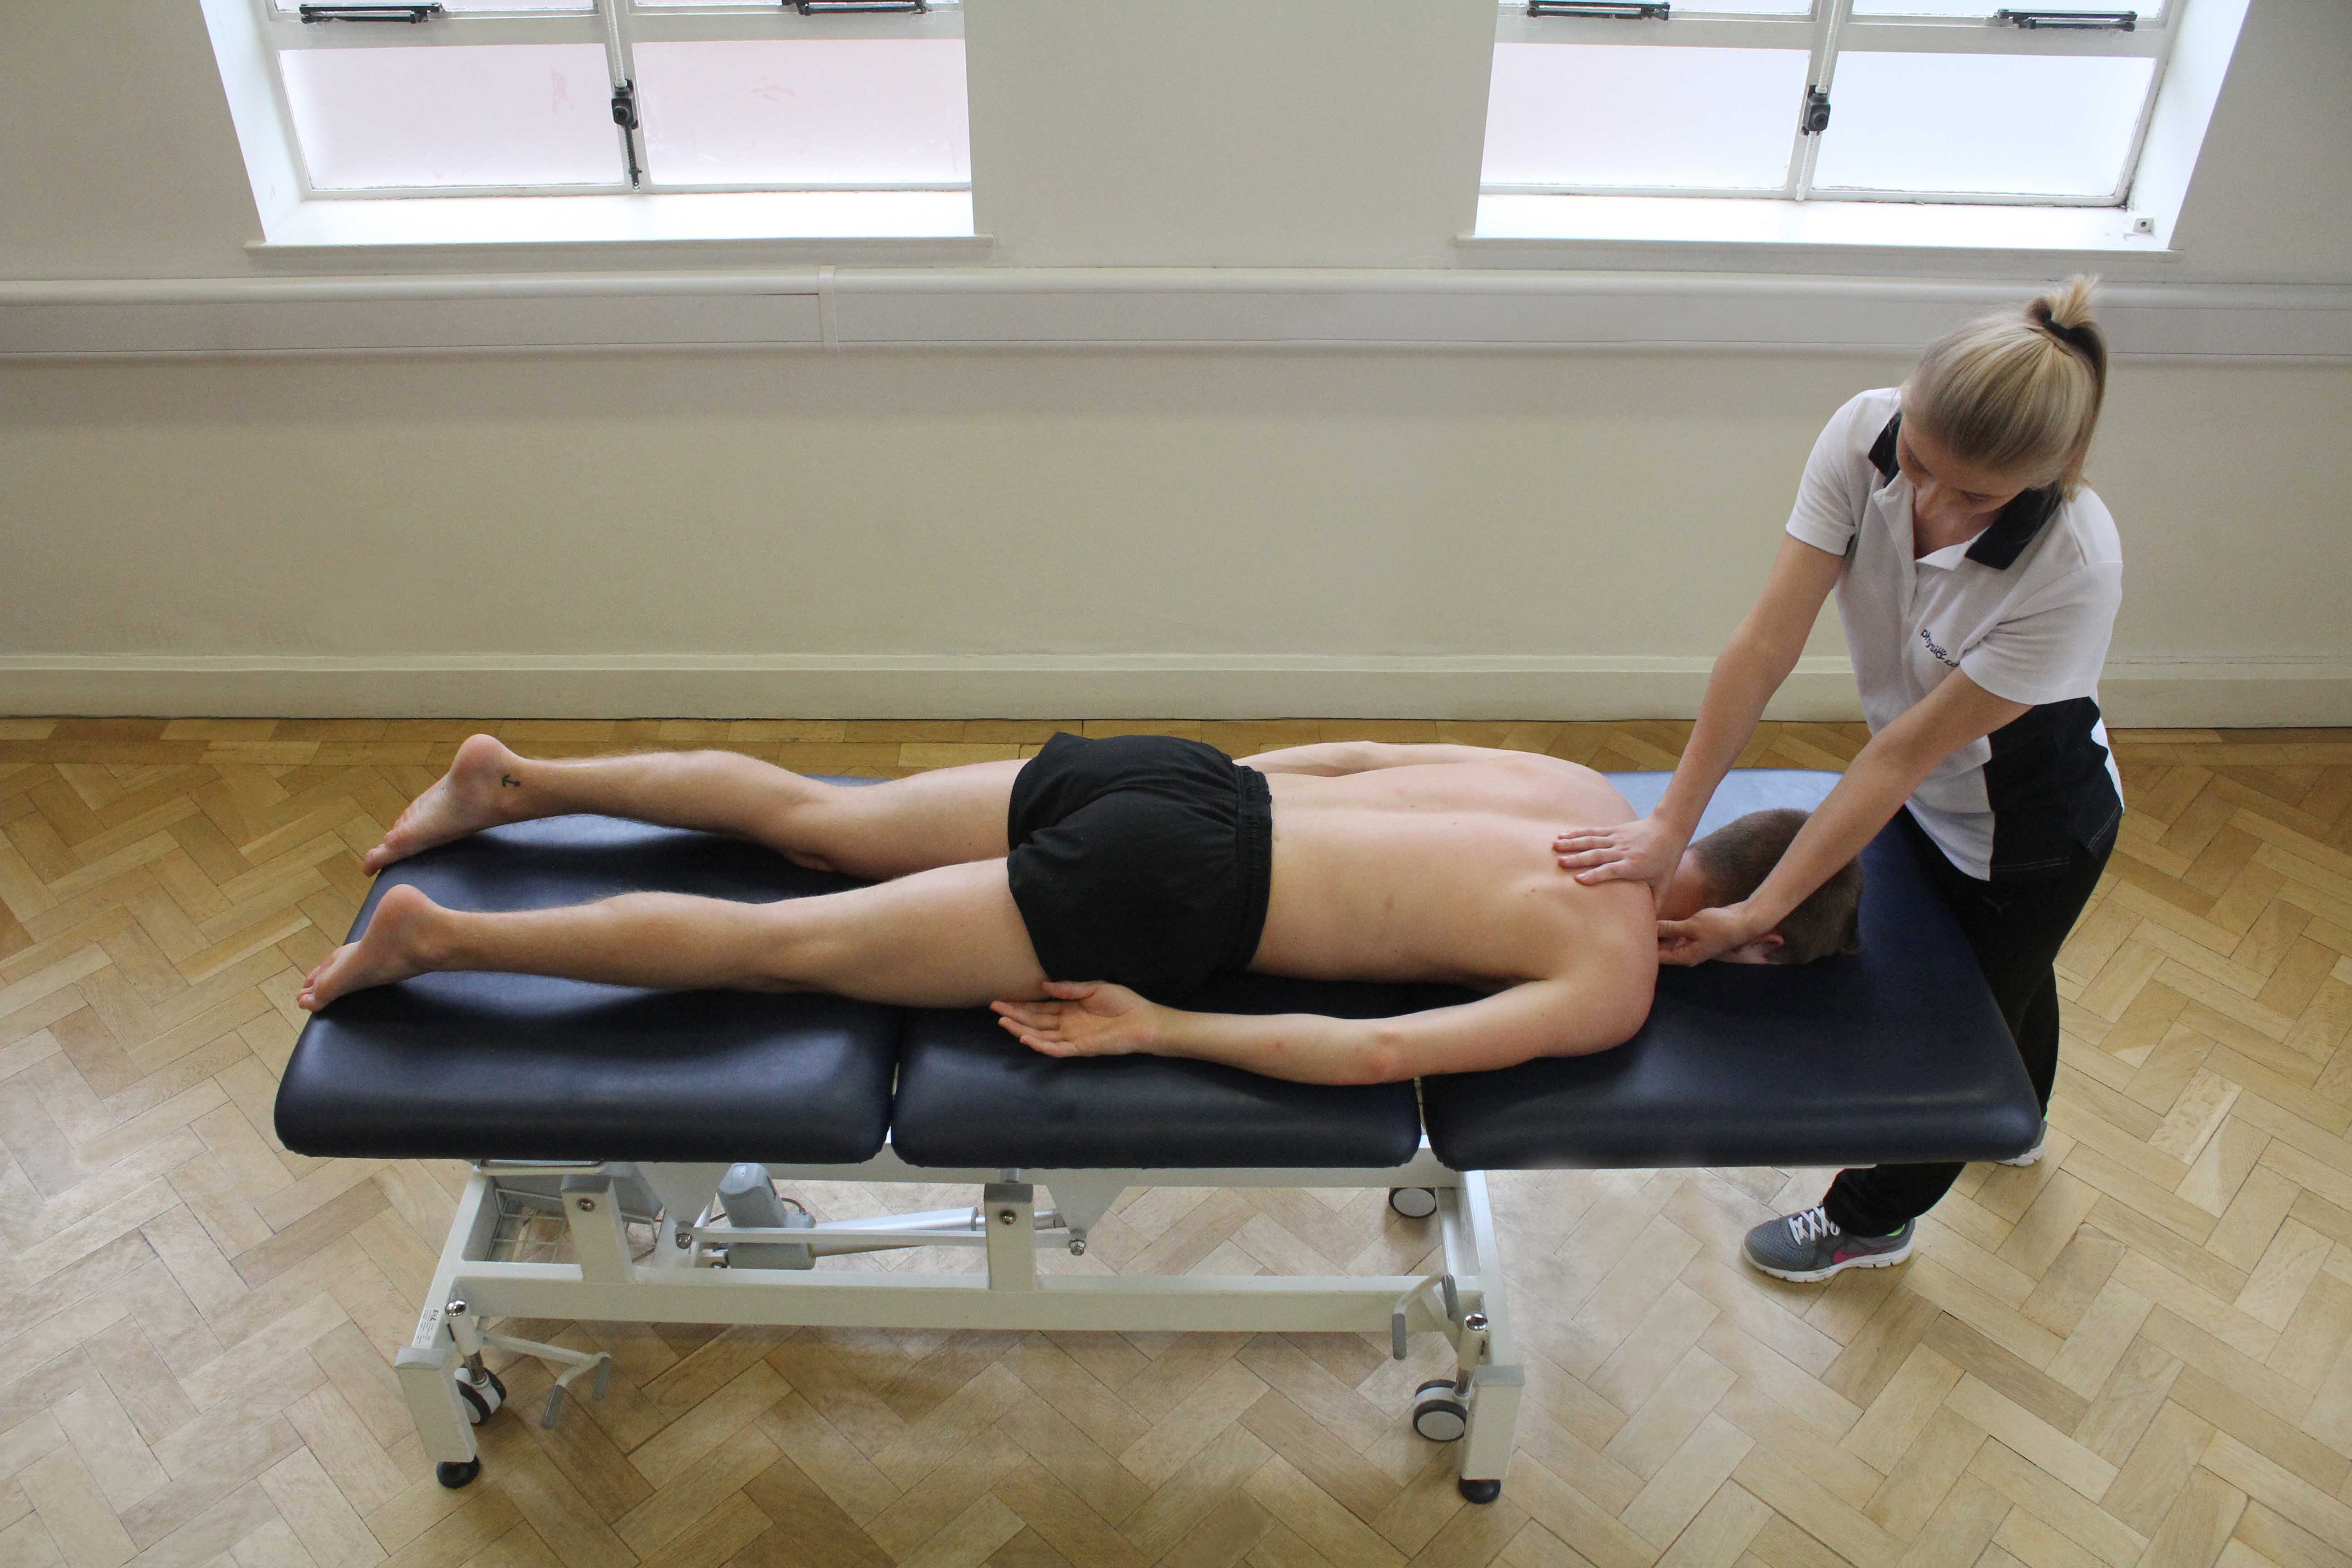 Trigger point massage applied to trapezius muscle